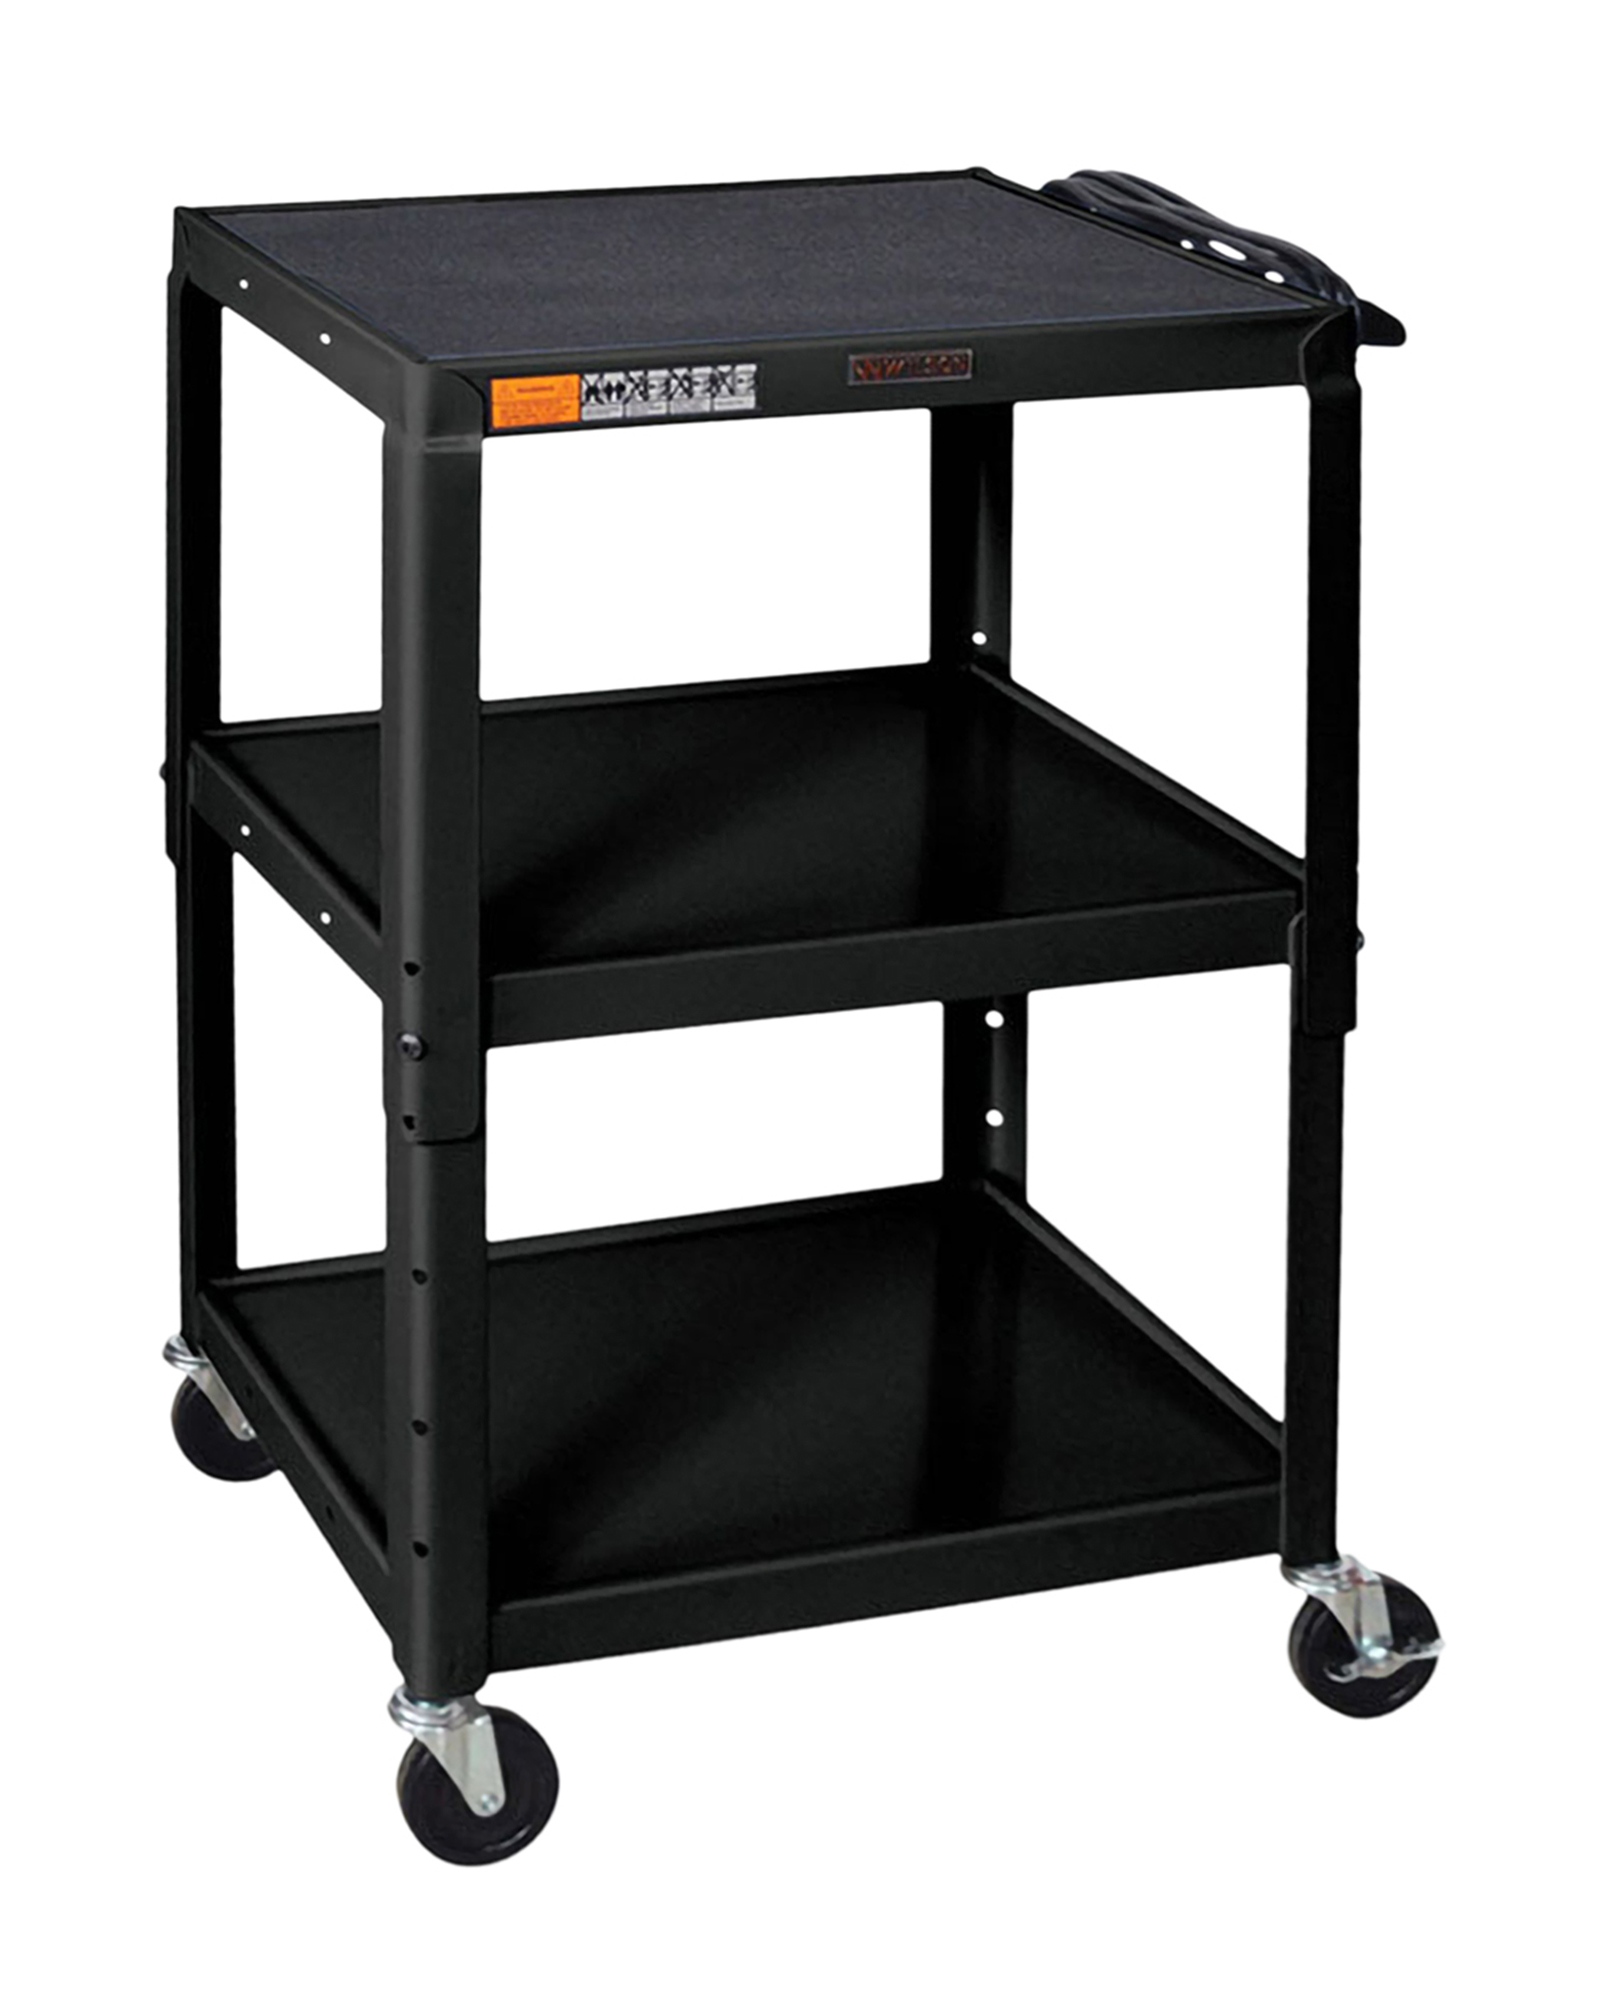 Offex Adjustable Height Steel Audio Video Cart - Three Shelves